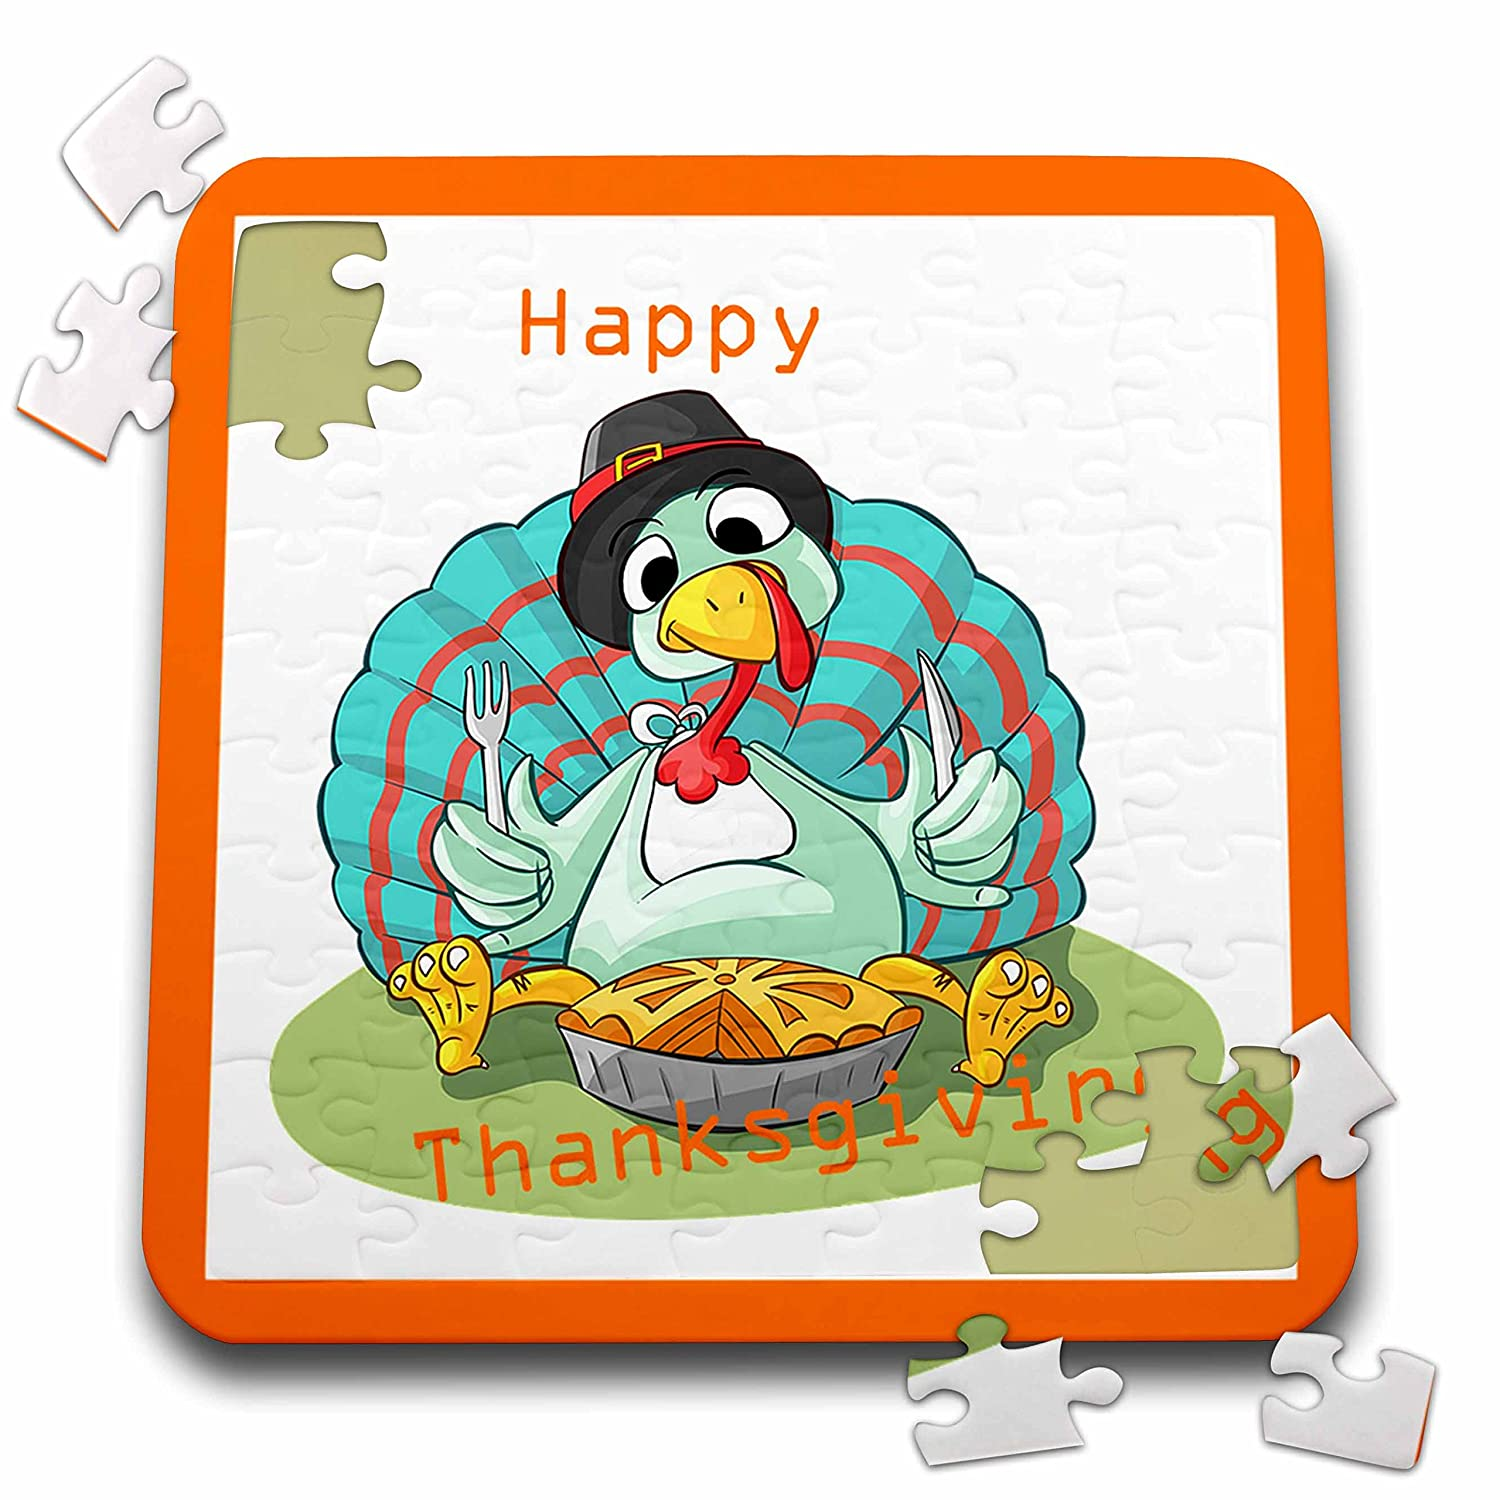 Thanksgiving - Image of Happy Thanksgiving Cartoon Turkey - 10x10 Inch Puzzle - 70 Pieces